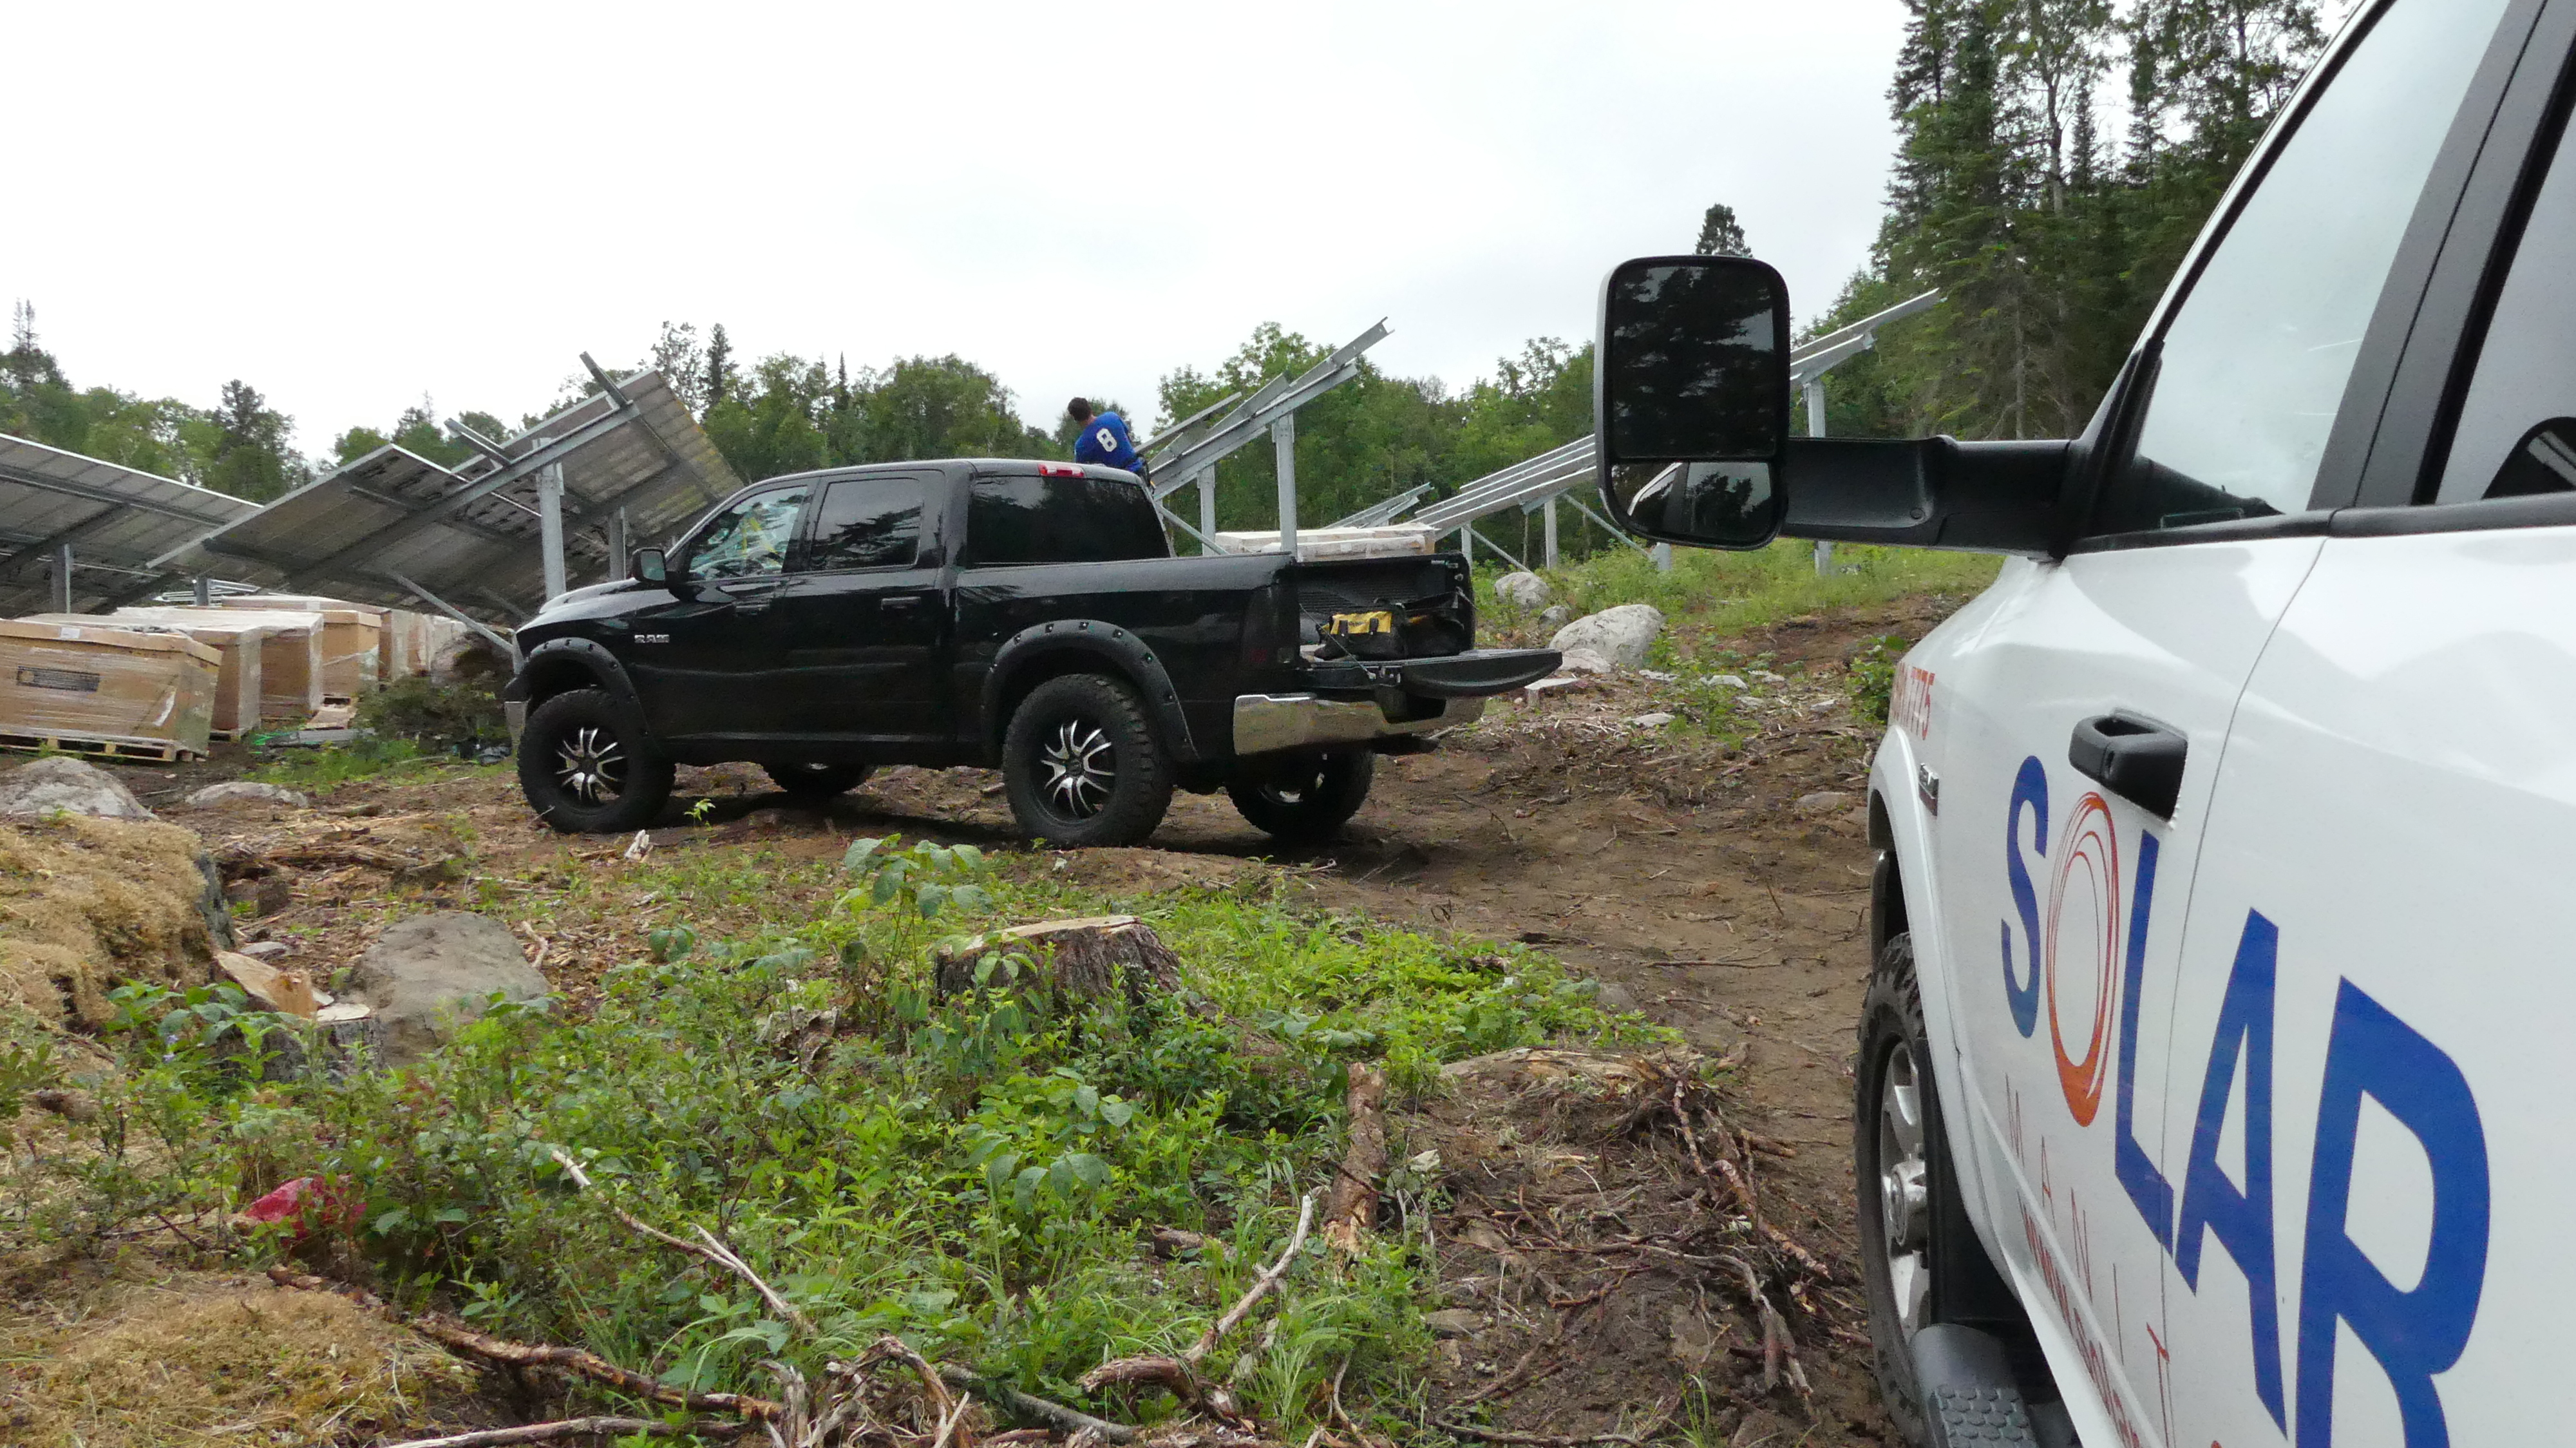 The crew had to cut a clearing in the forest to make room for the solar panels. (Cameron MacLean/CBC)